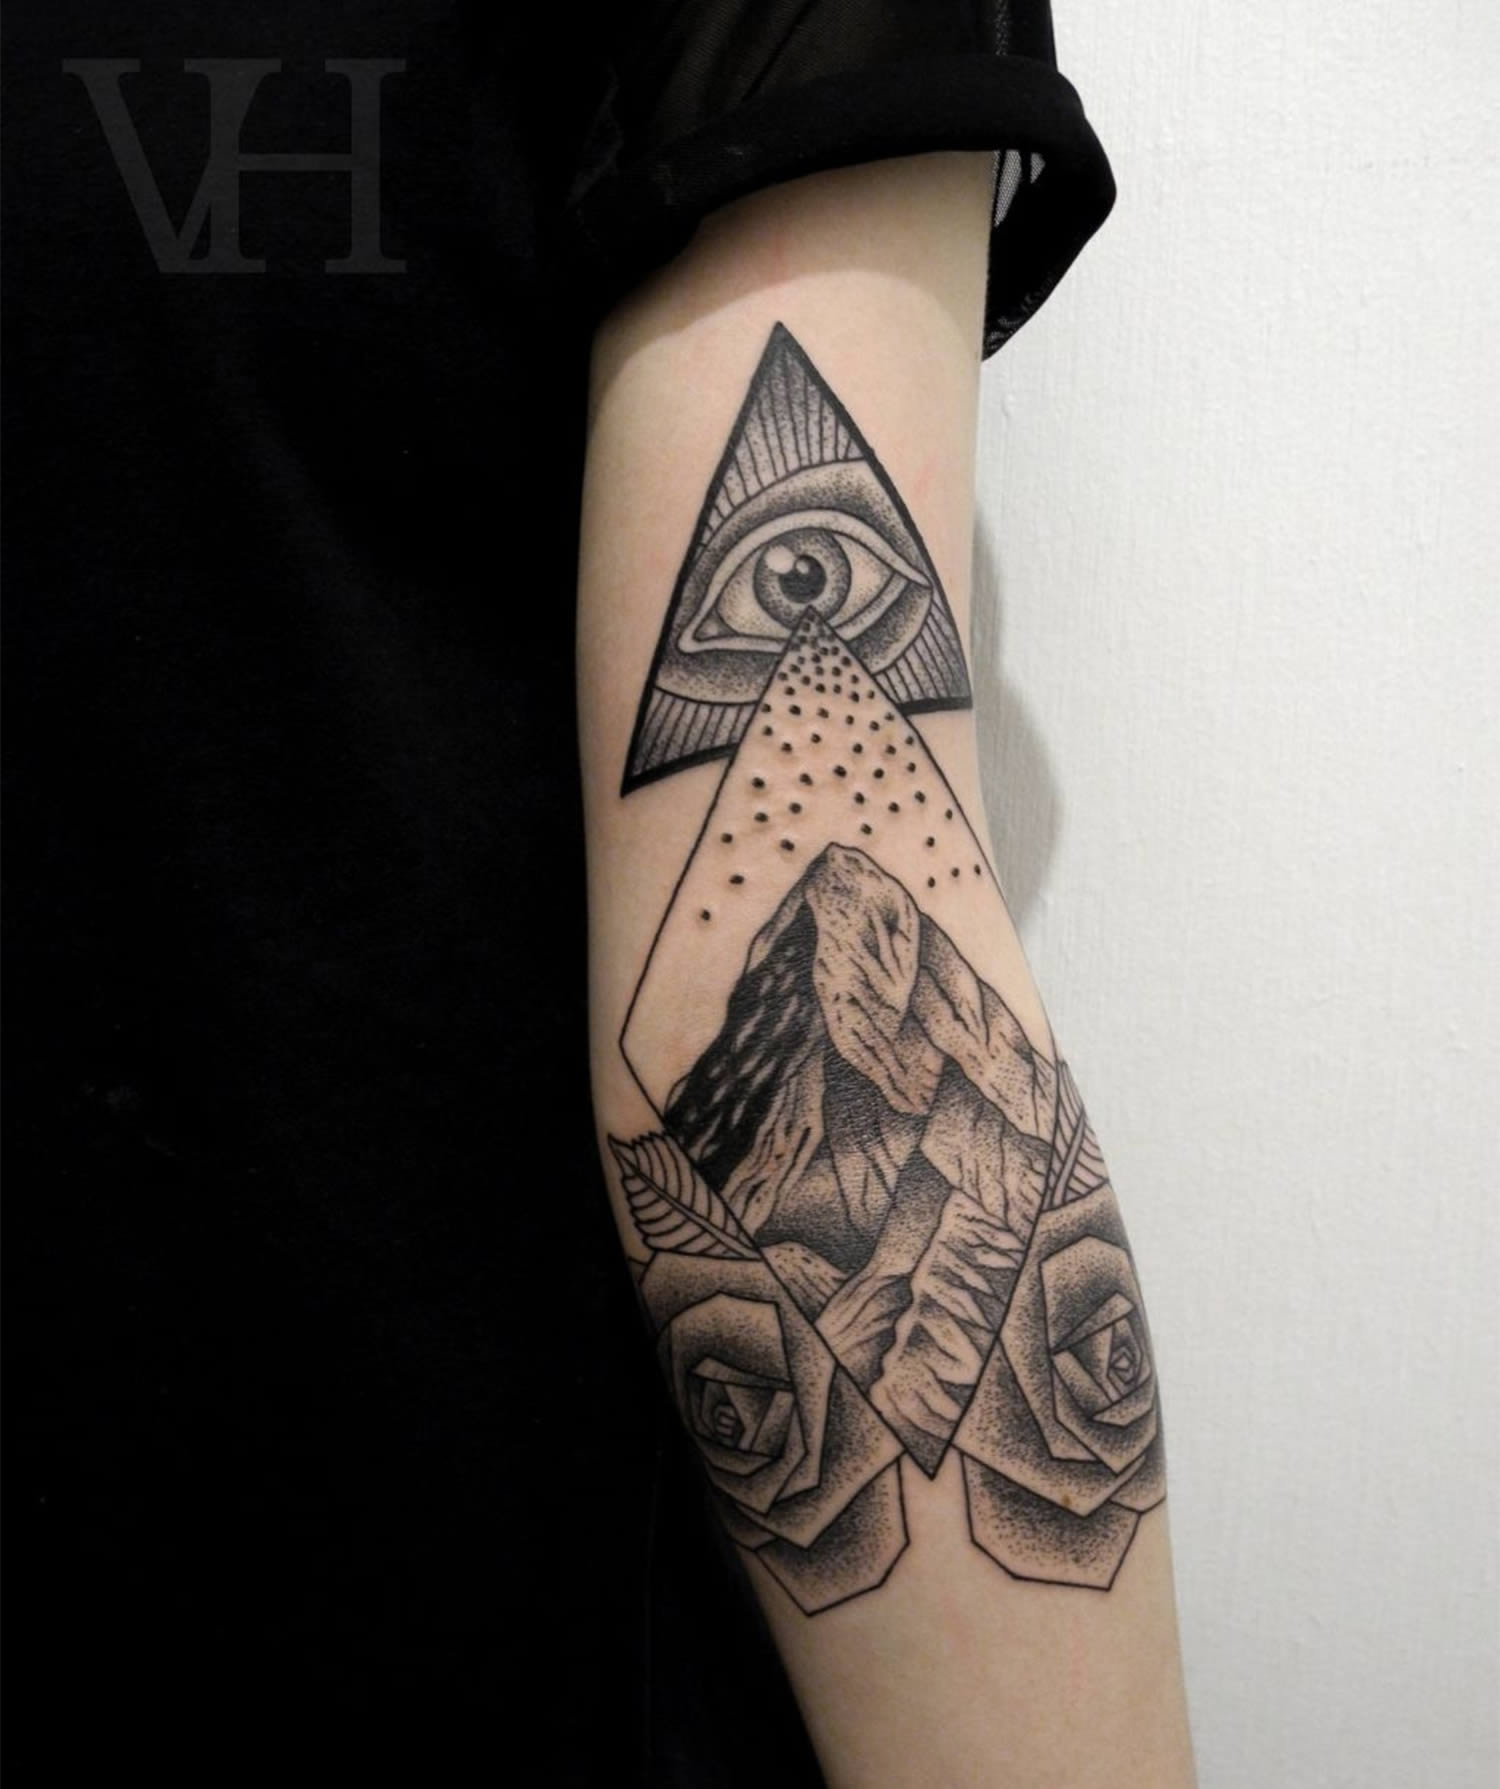 00a8488ea Wonderful Triangle Eye With Mountains And Roses Tattoo On Tricep By  Valentin Hirsh